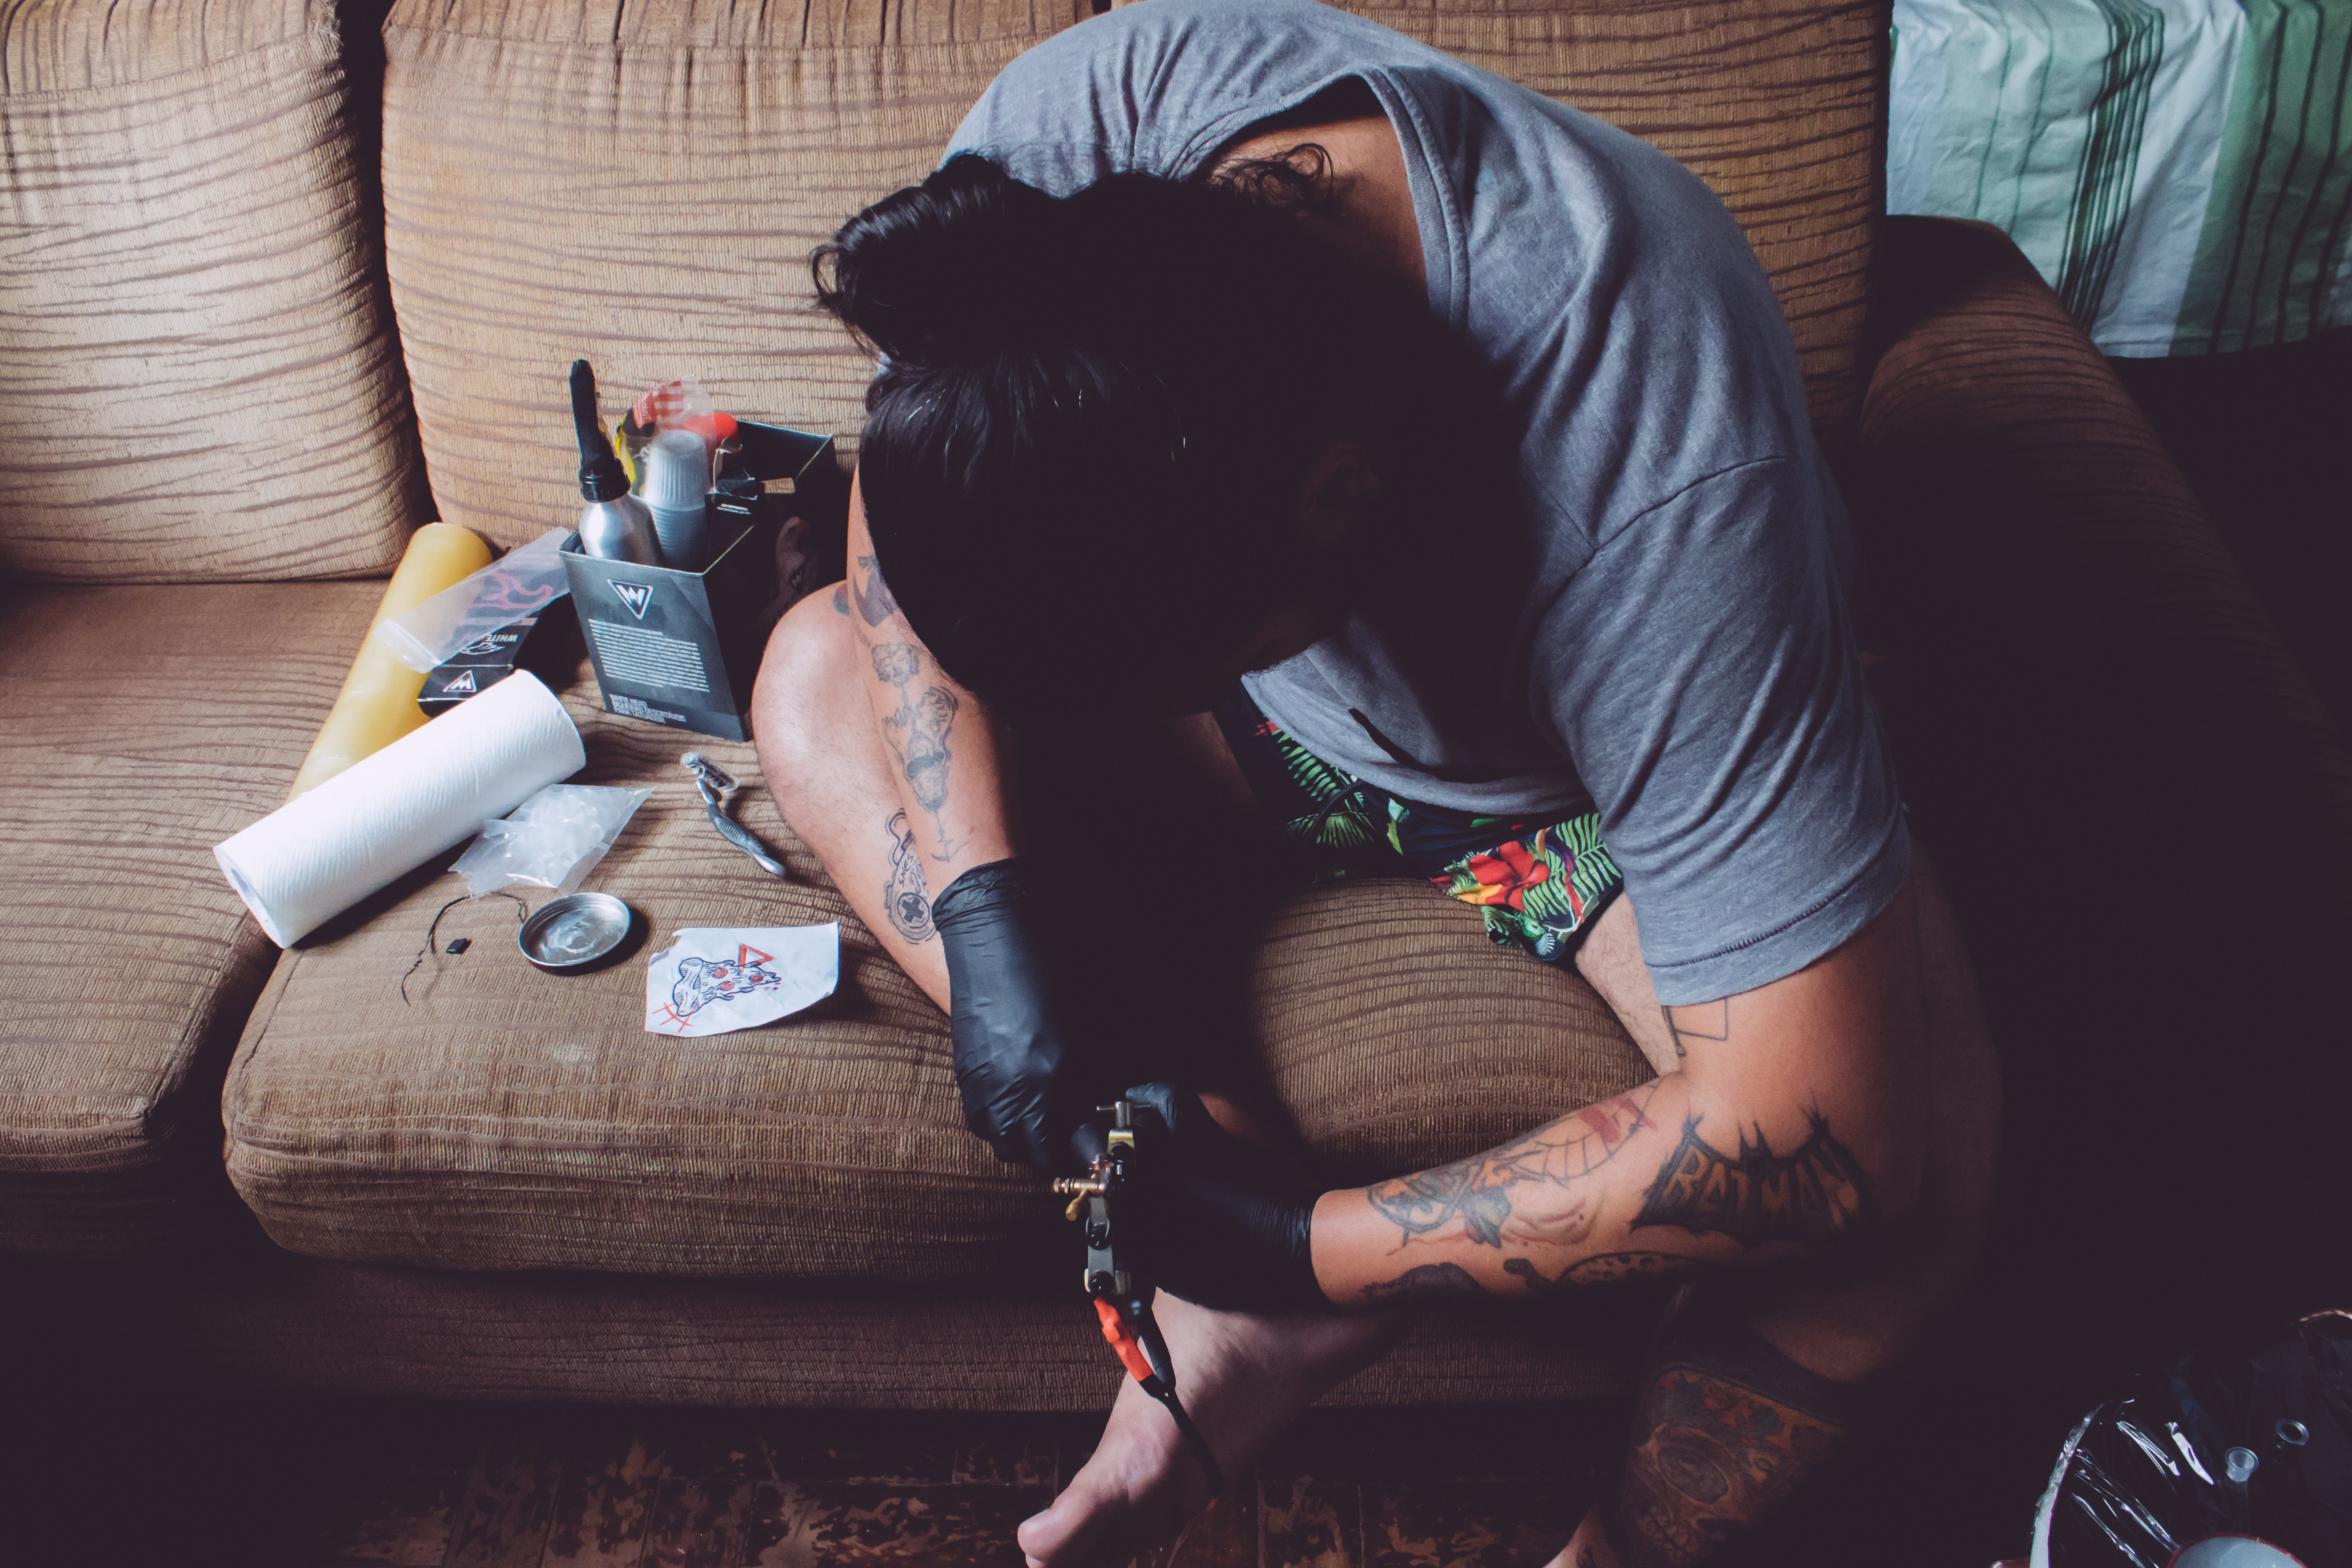 man sitting on couch doing tattoo session